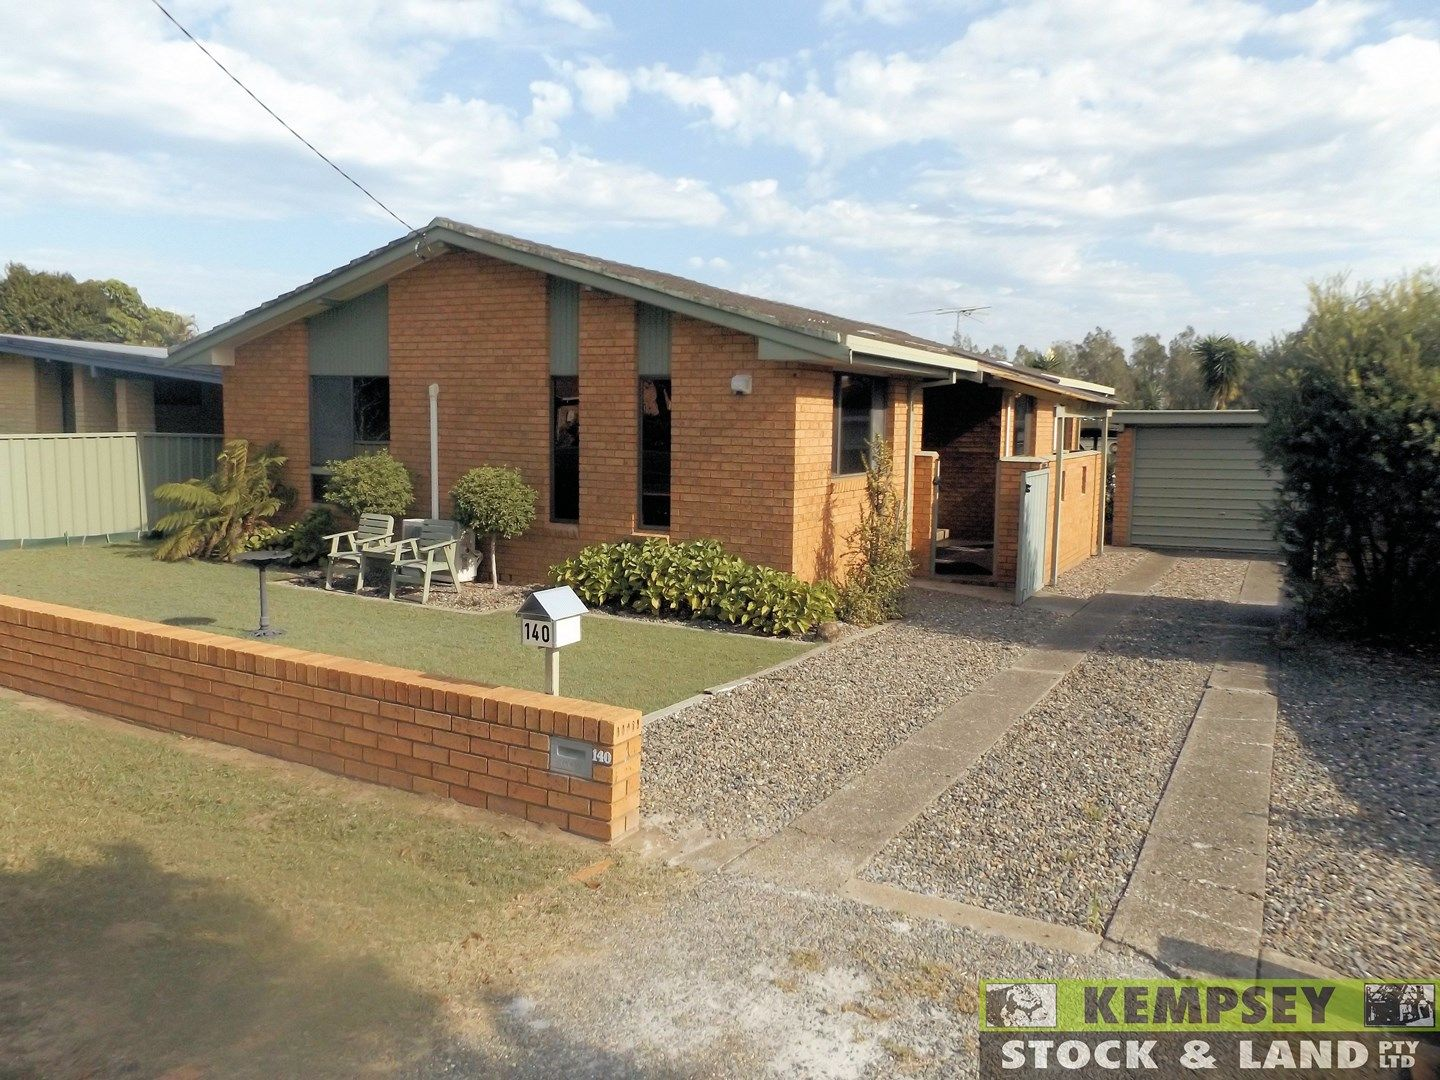 140 north st, west kempsey nsw 2440 - house for sale | domain